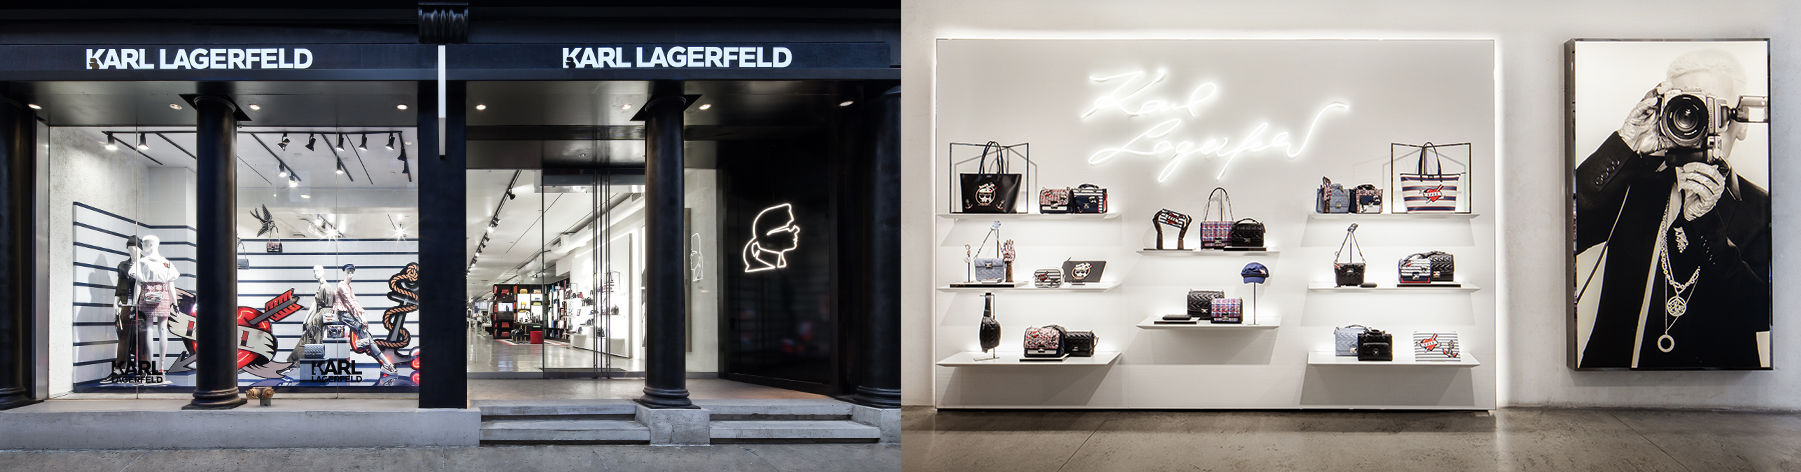 Unsere Stores - Karl Lagerfeld